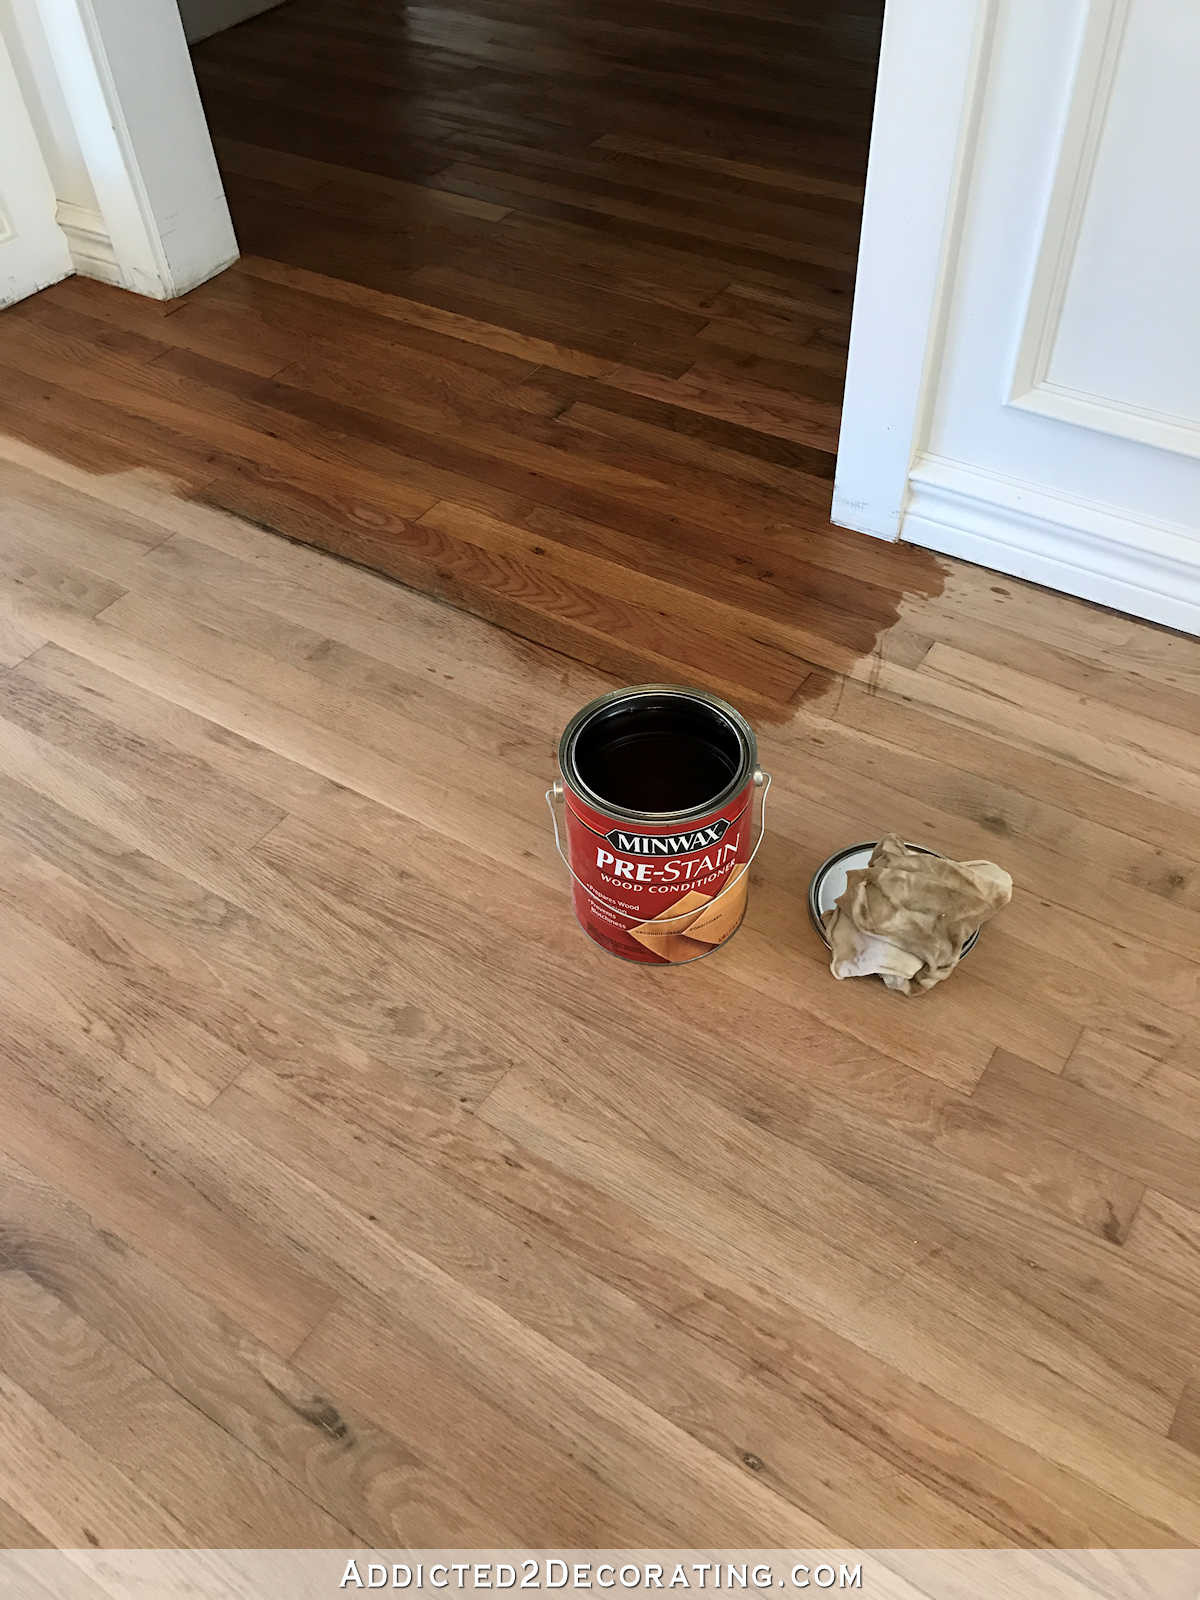 hardwood floor cleaning tips of how to clean wood floors with vinegar floor intended for how to clean wood floors with vinegar hardwood floor cleaning best product for hardwood floors ways